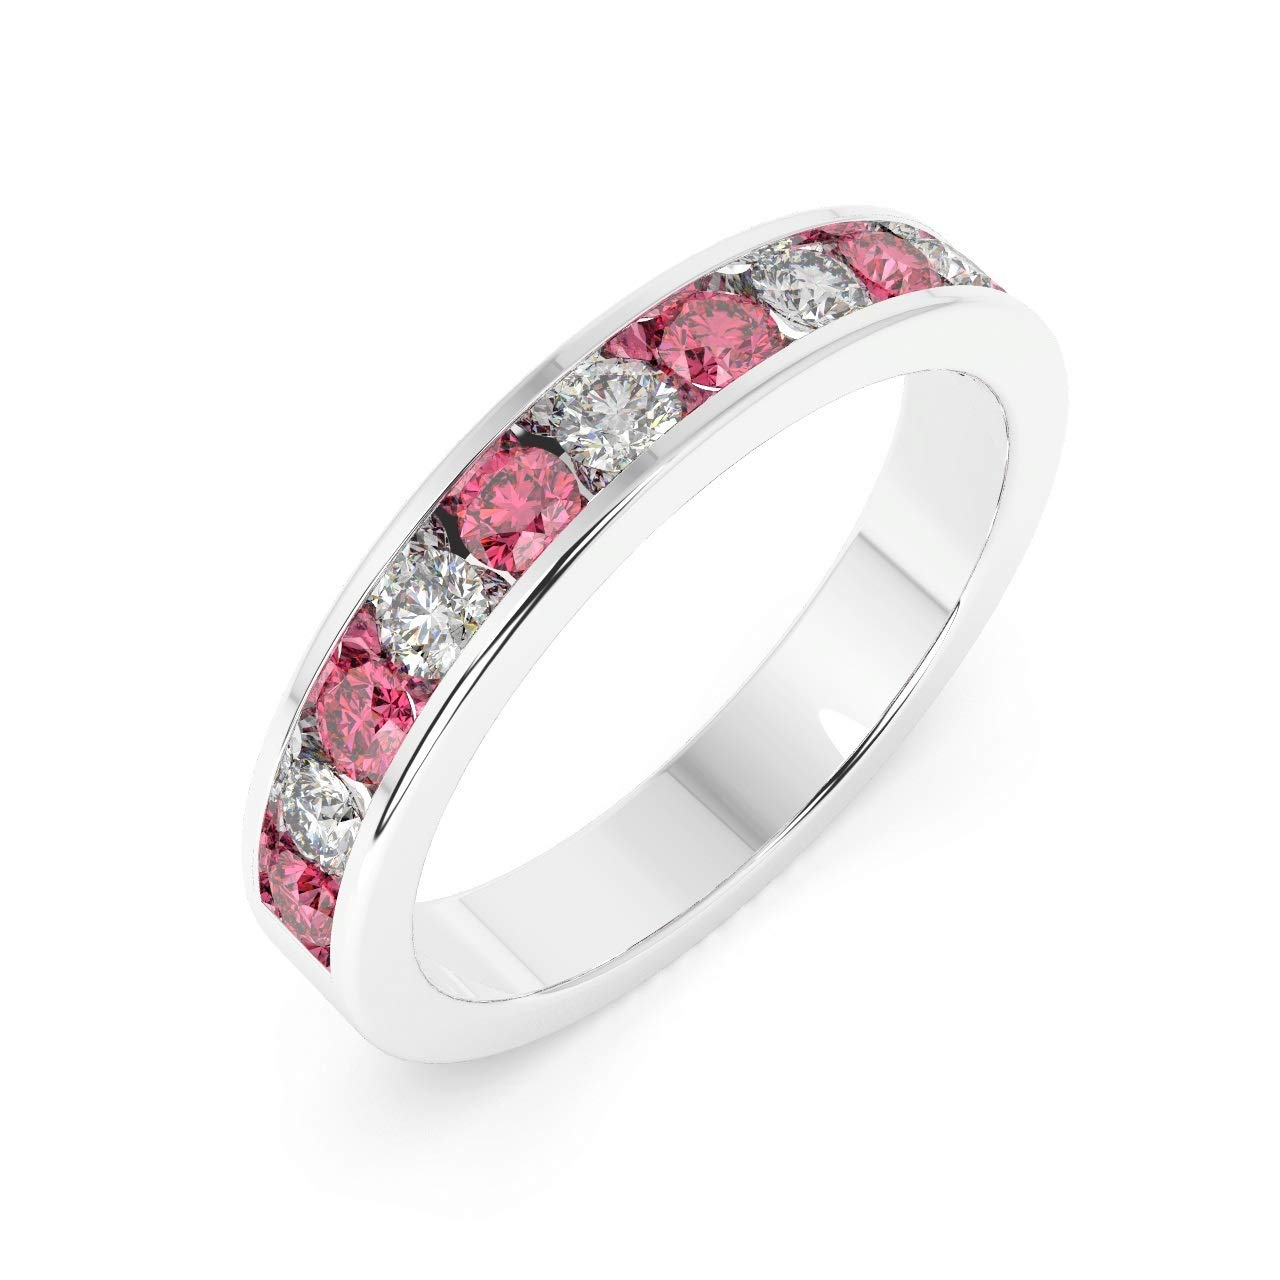 3.5 mm 0,75 carats Rubis et diamants Bague en or blanc